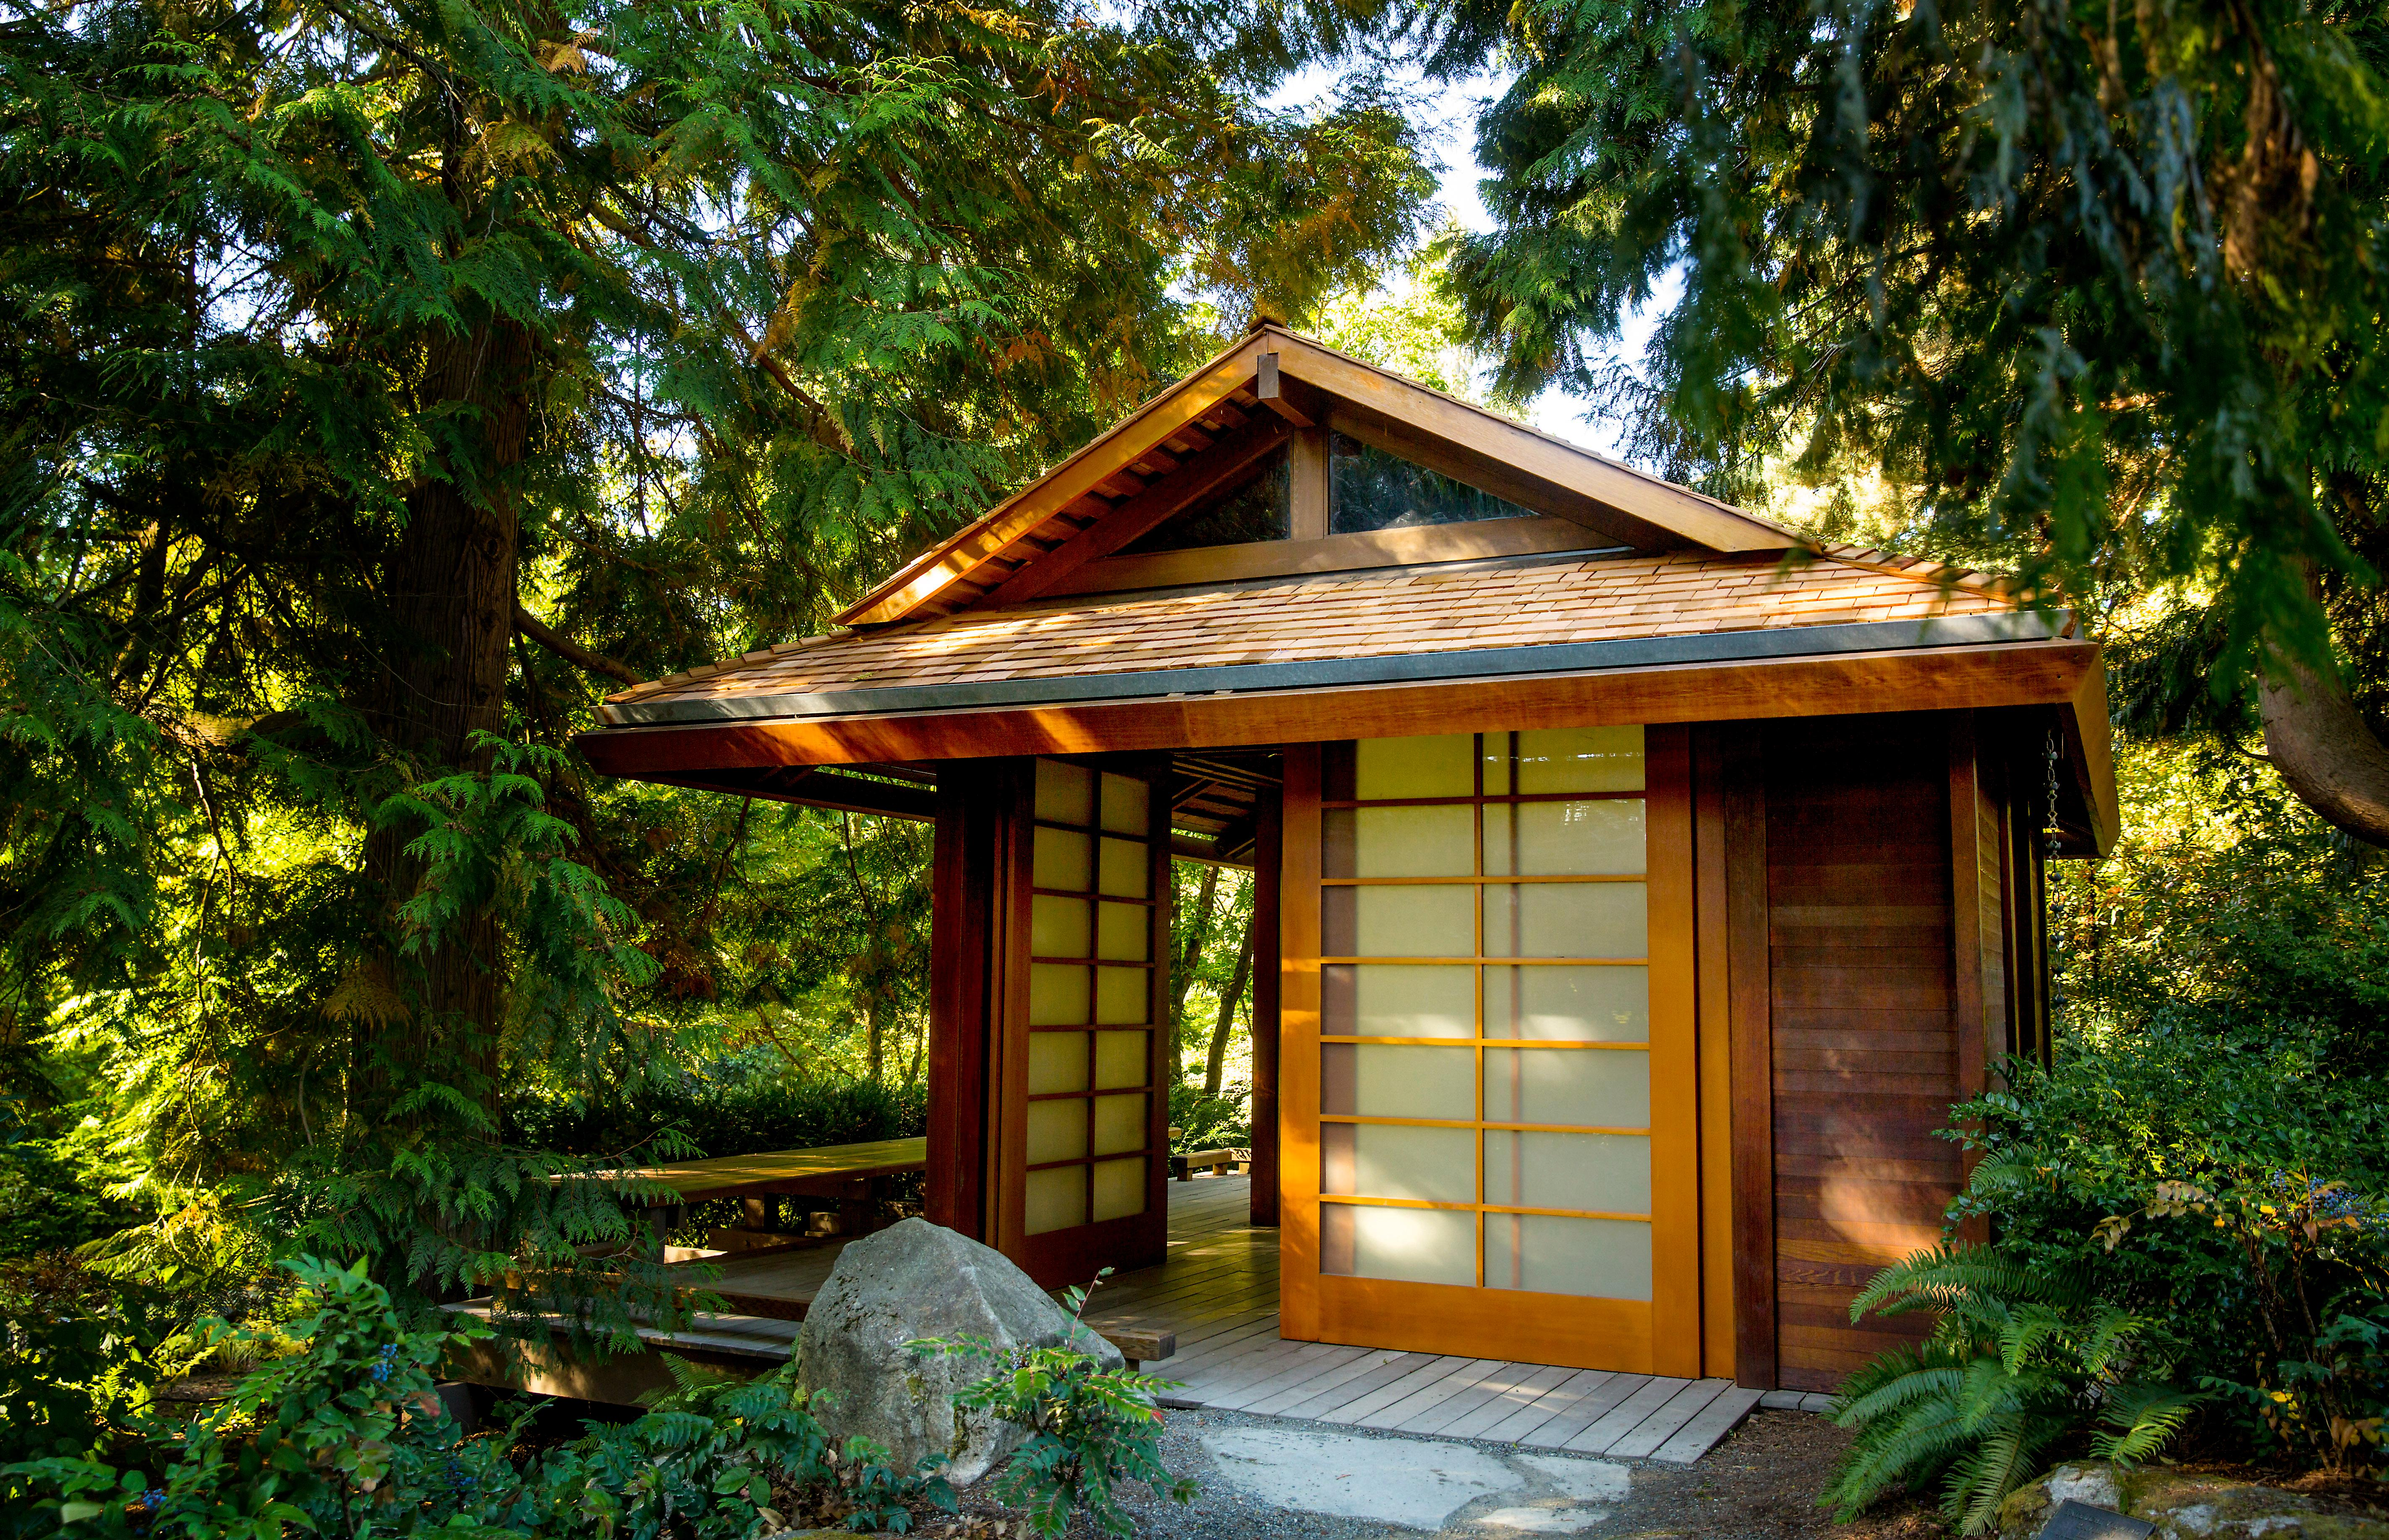 The Bellevue Botanical Garden is an urban refuge, encompassing 53-acres of cultivated gardens, restored woodlands, and natural wetlands. The living collections showcase plants that thrive in the Pacific Northwest. AND, it's one of the most beautiful places to take in the autumn colors in the PNW. (Image: Sy Bean / Seattle Refined)